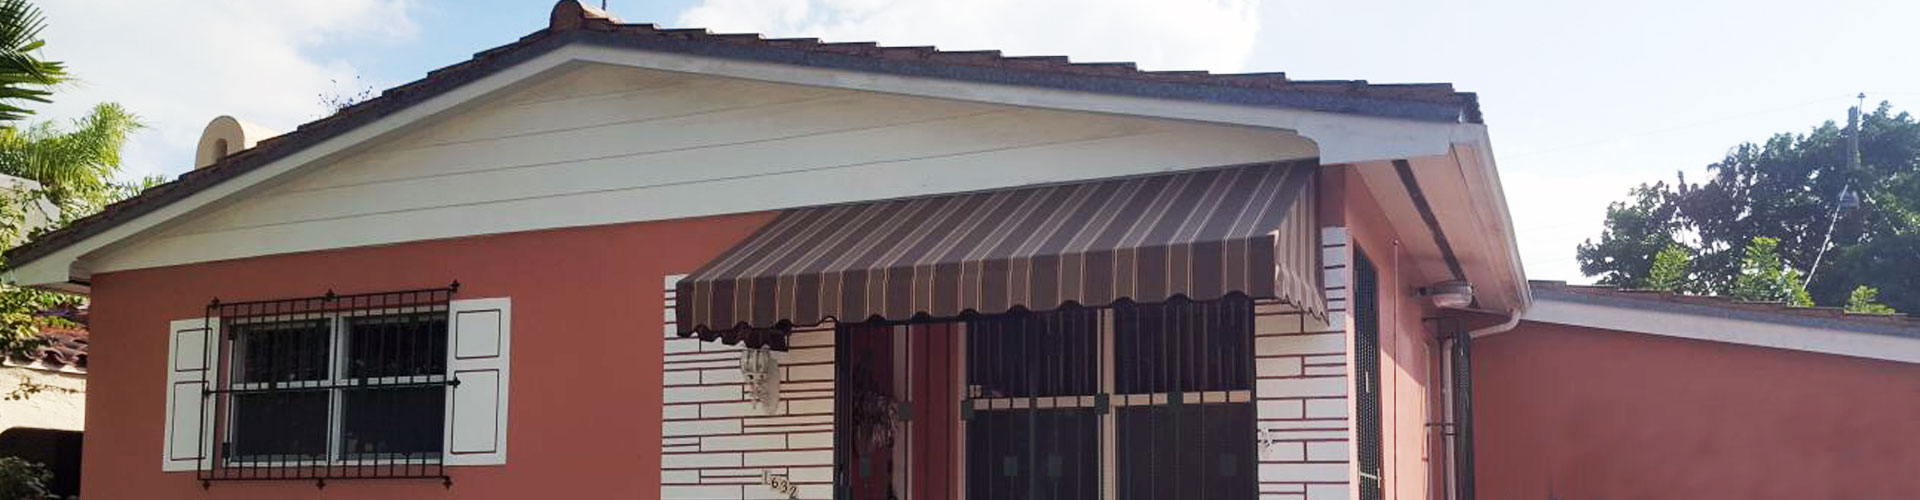 Affordable Awnings in Miami